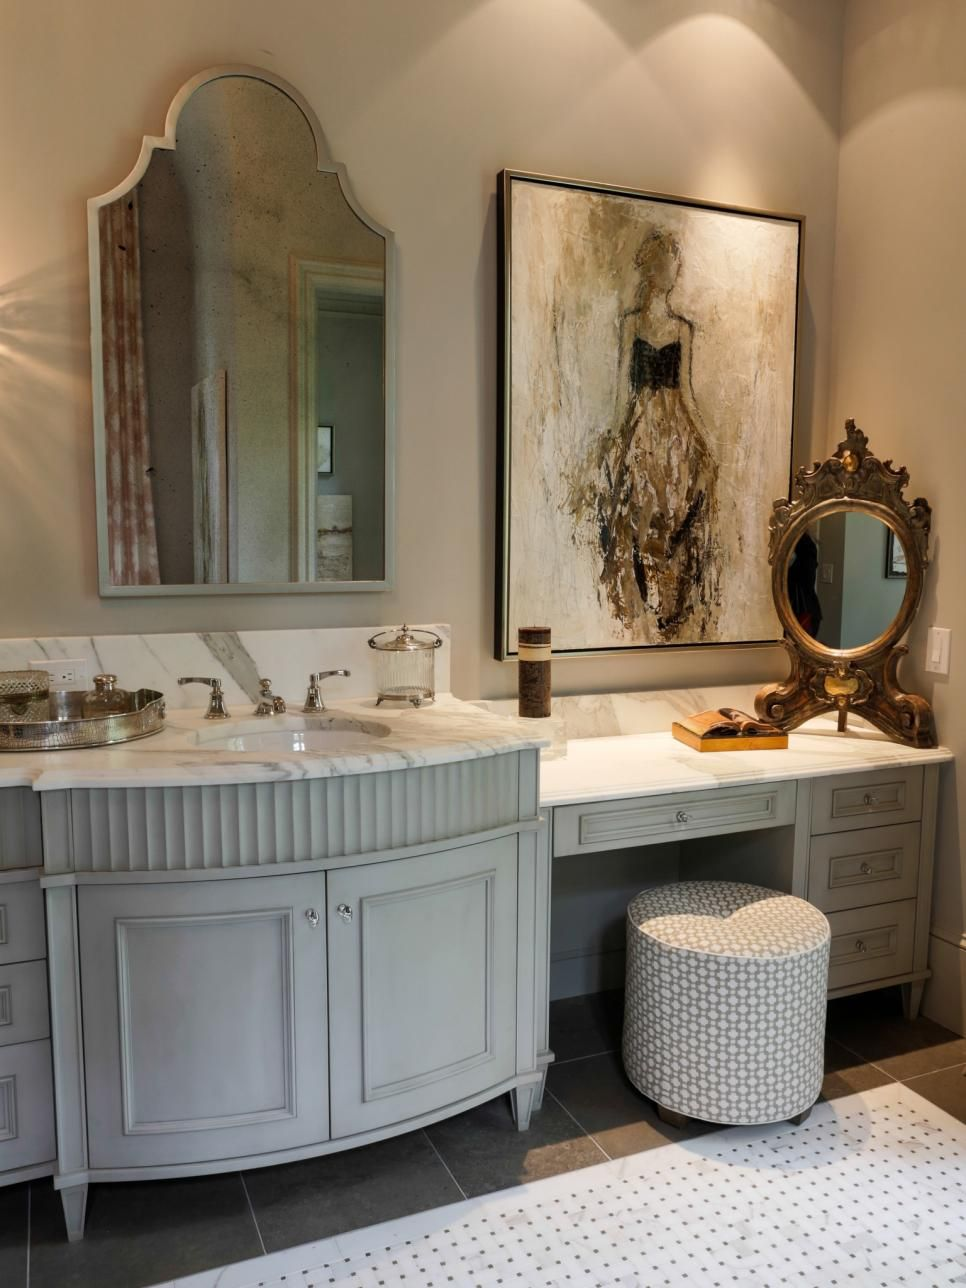 An ornate gold mirror complements the larger vanity mirror in this on french provincial bathroom, greek island bathroom design, french country bath, french country style interior design bathroom, french country decorating, rustic country bathroom design, french country kitchen decor ideas,